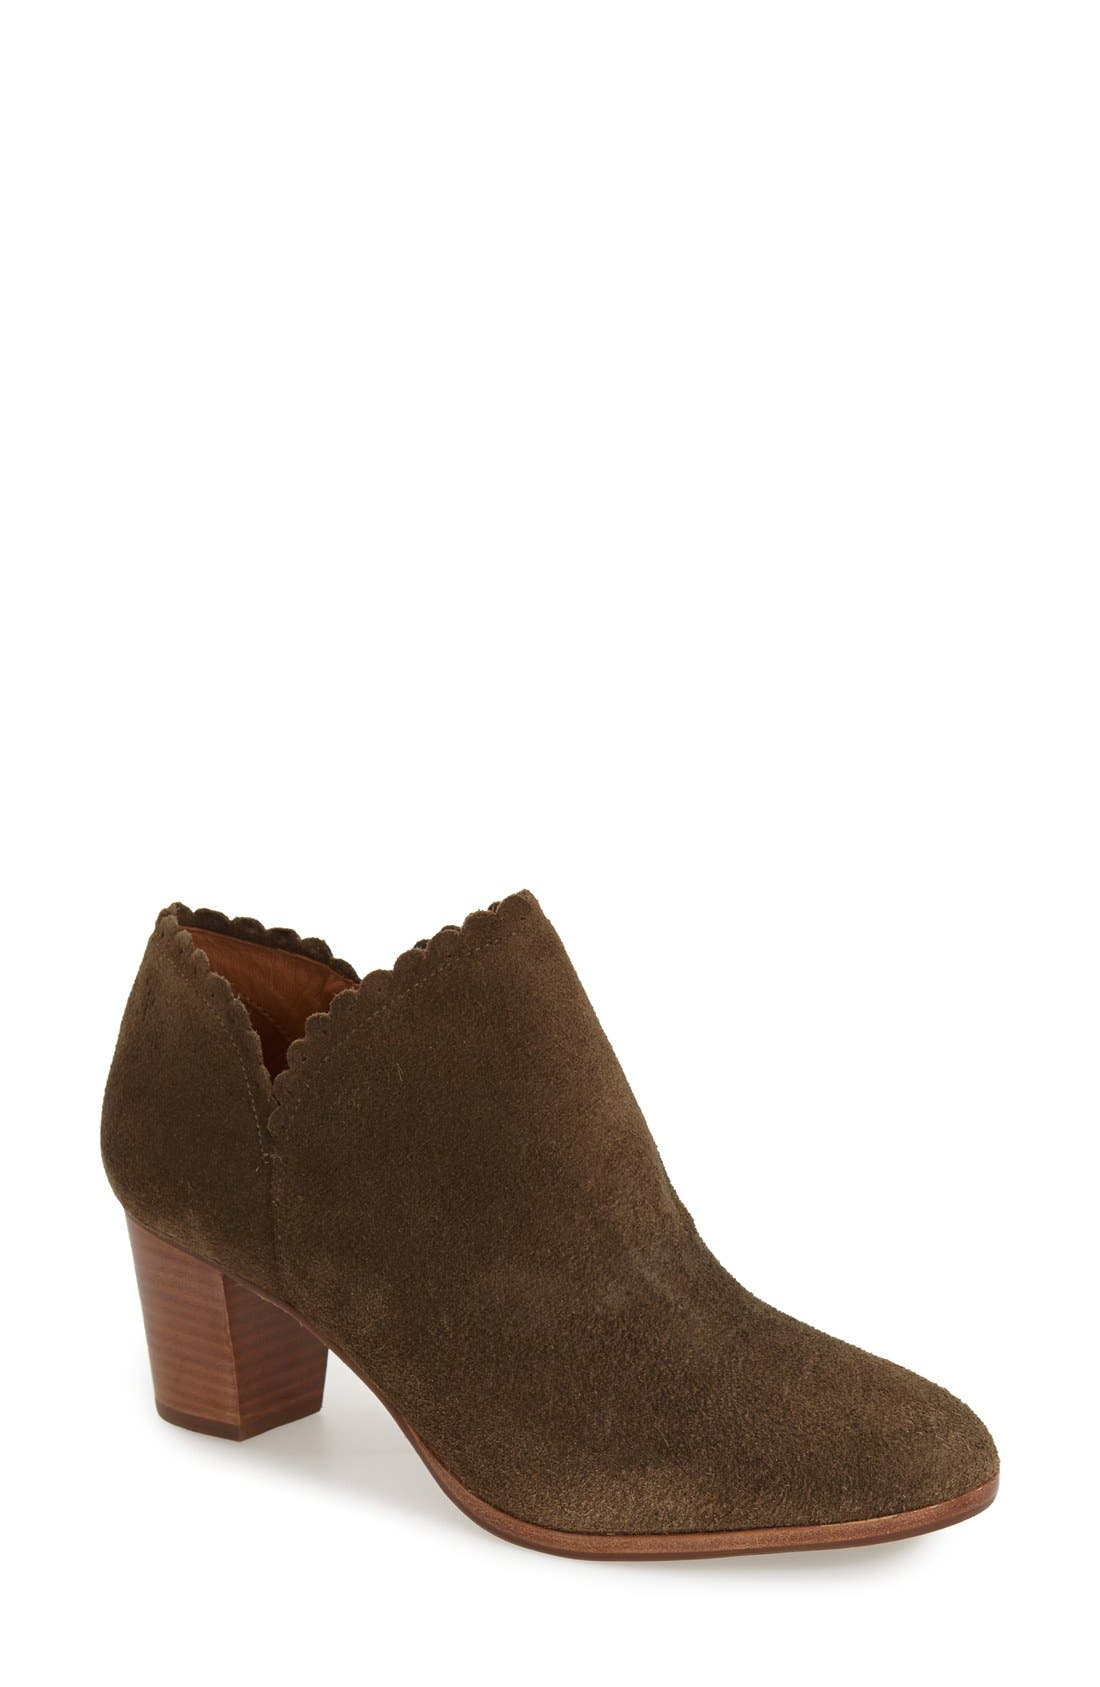 'Marianne' Bootie,                             Main thumbnail 1, color,                             Olive Suede